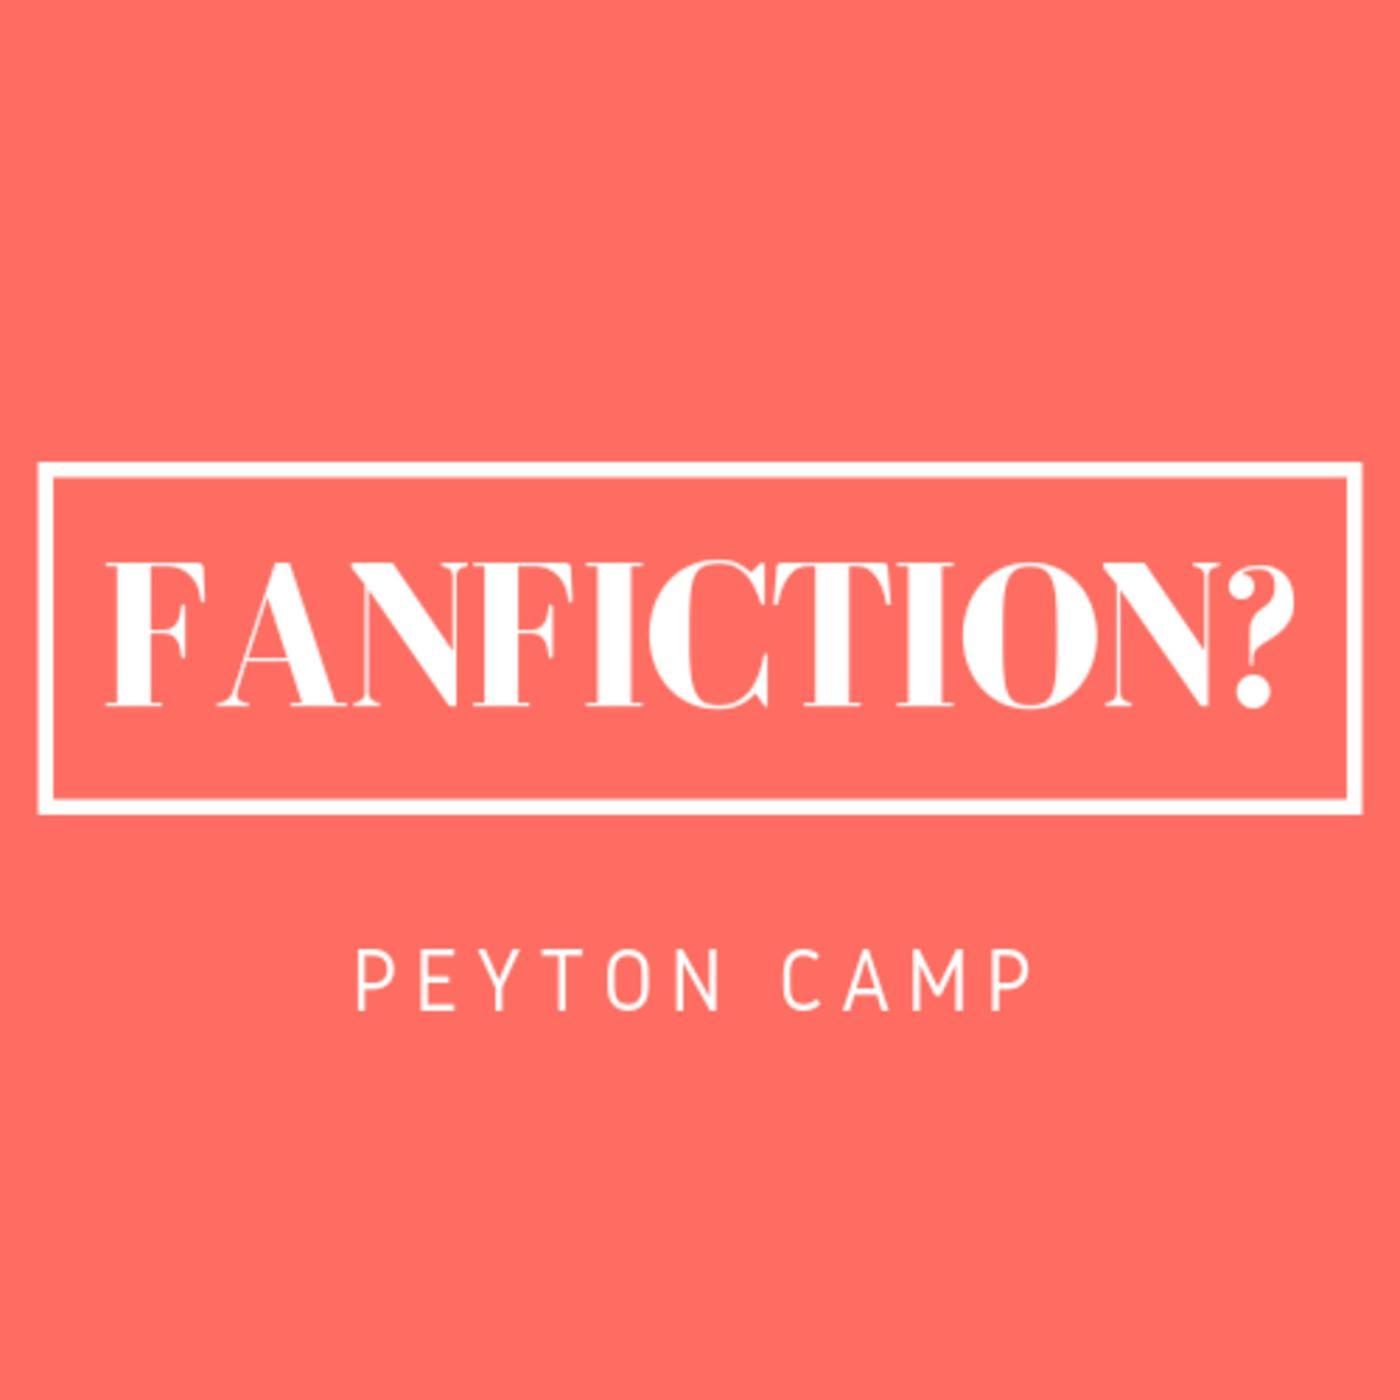 FanFiction? (podcast) - Peyton Camp | Listen Notes